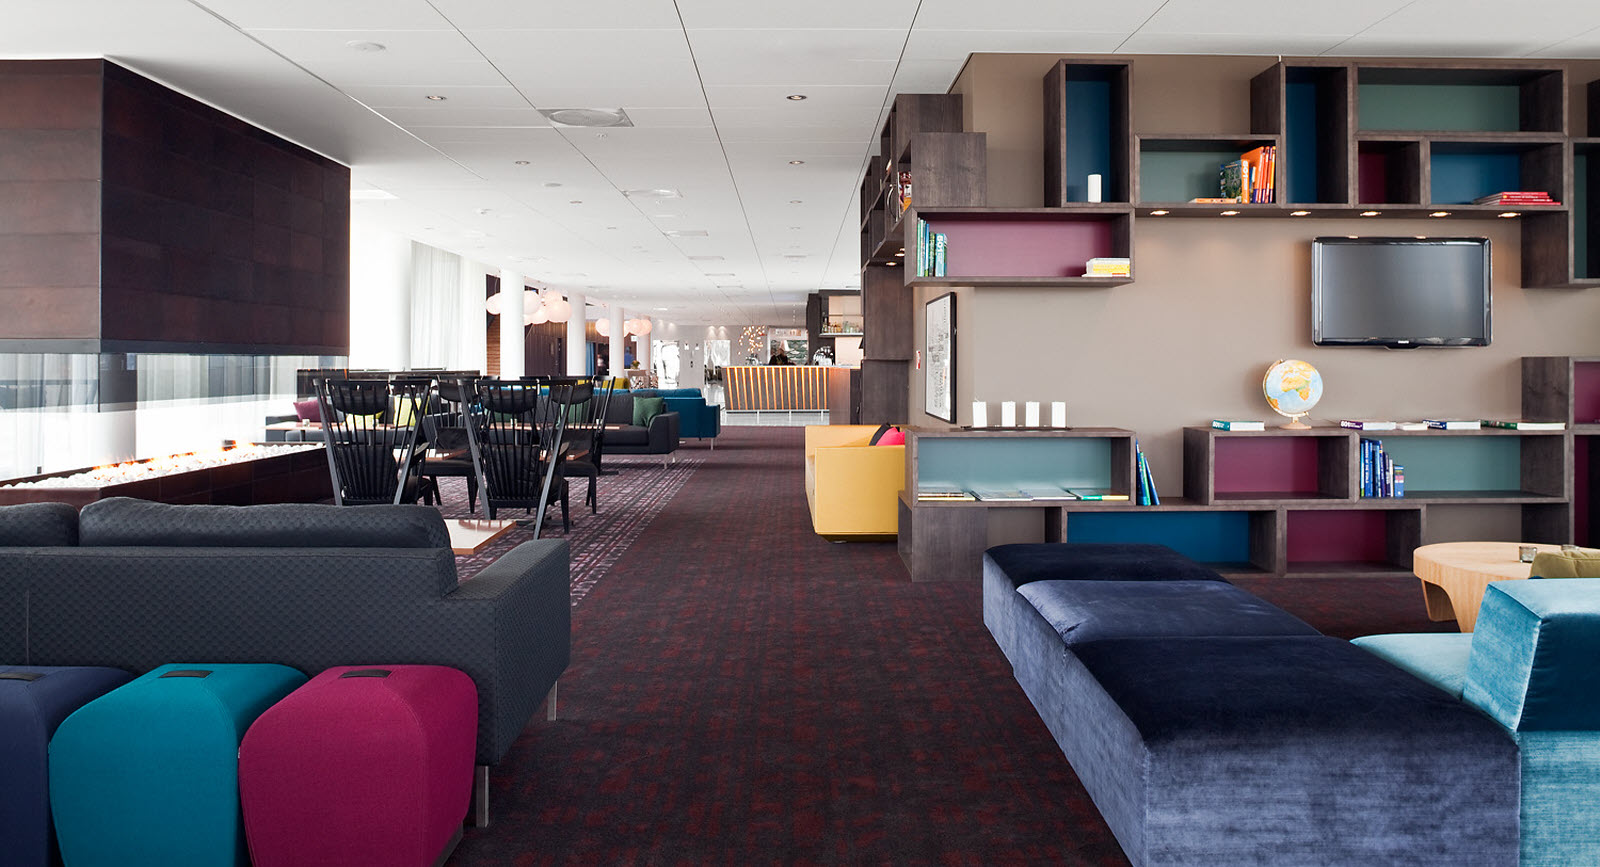 Scandic Oslo Airport, lounge